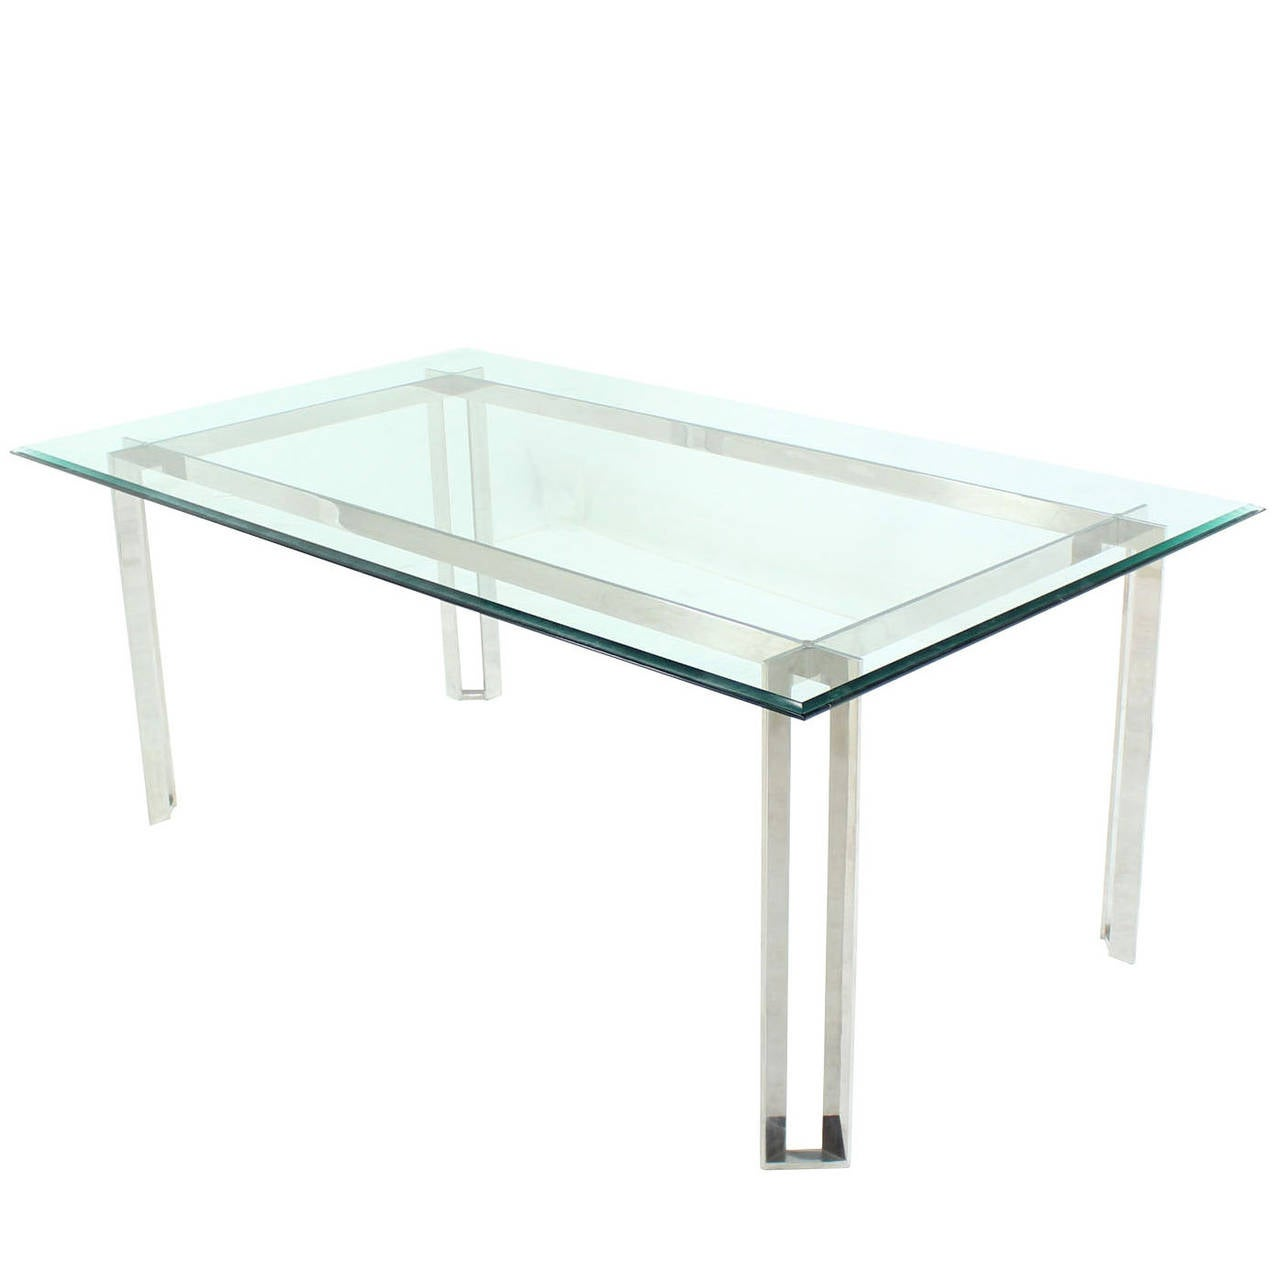 Polished Stainless Steel and Thick Glass Top Dining Room Table For